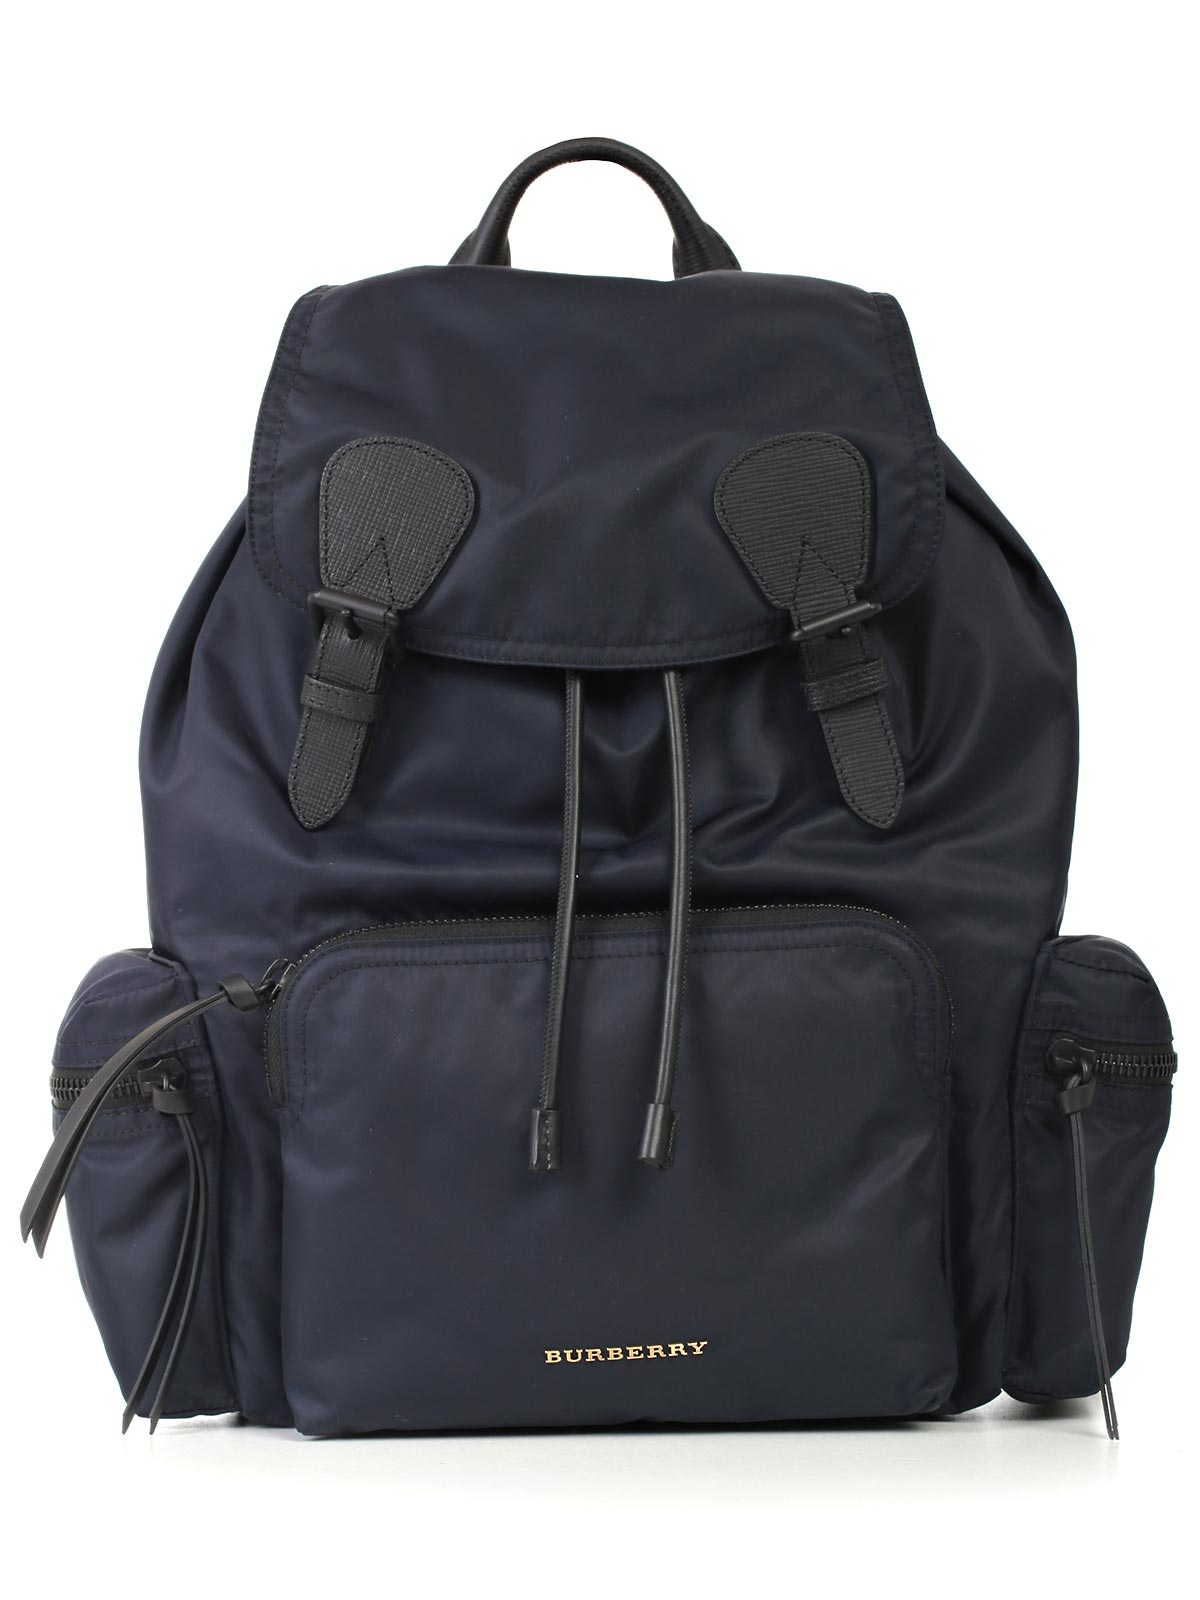 Picture of BURBERRY Backpack